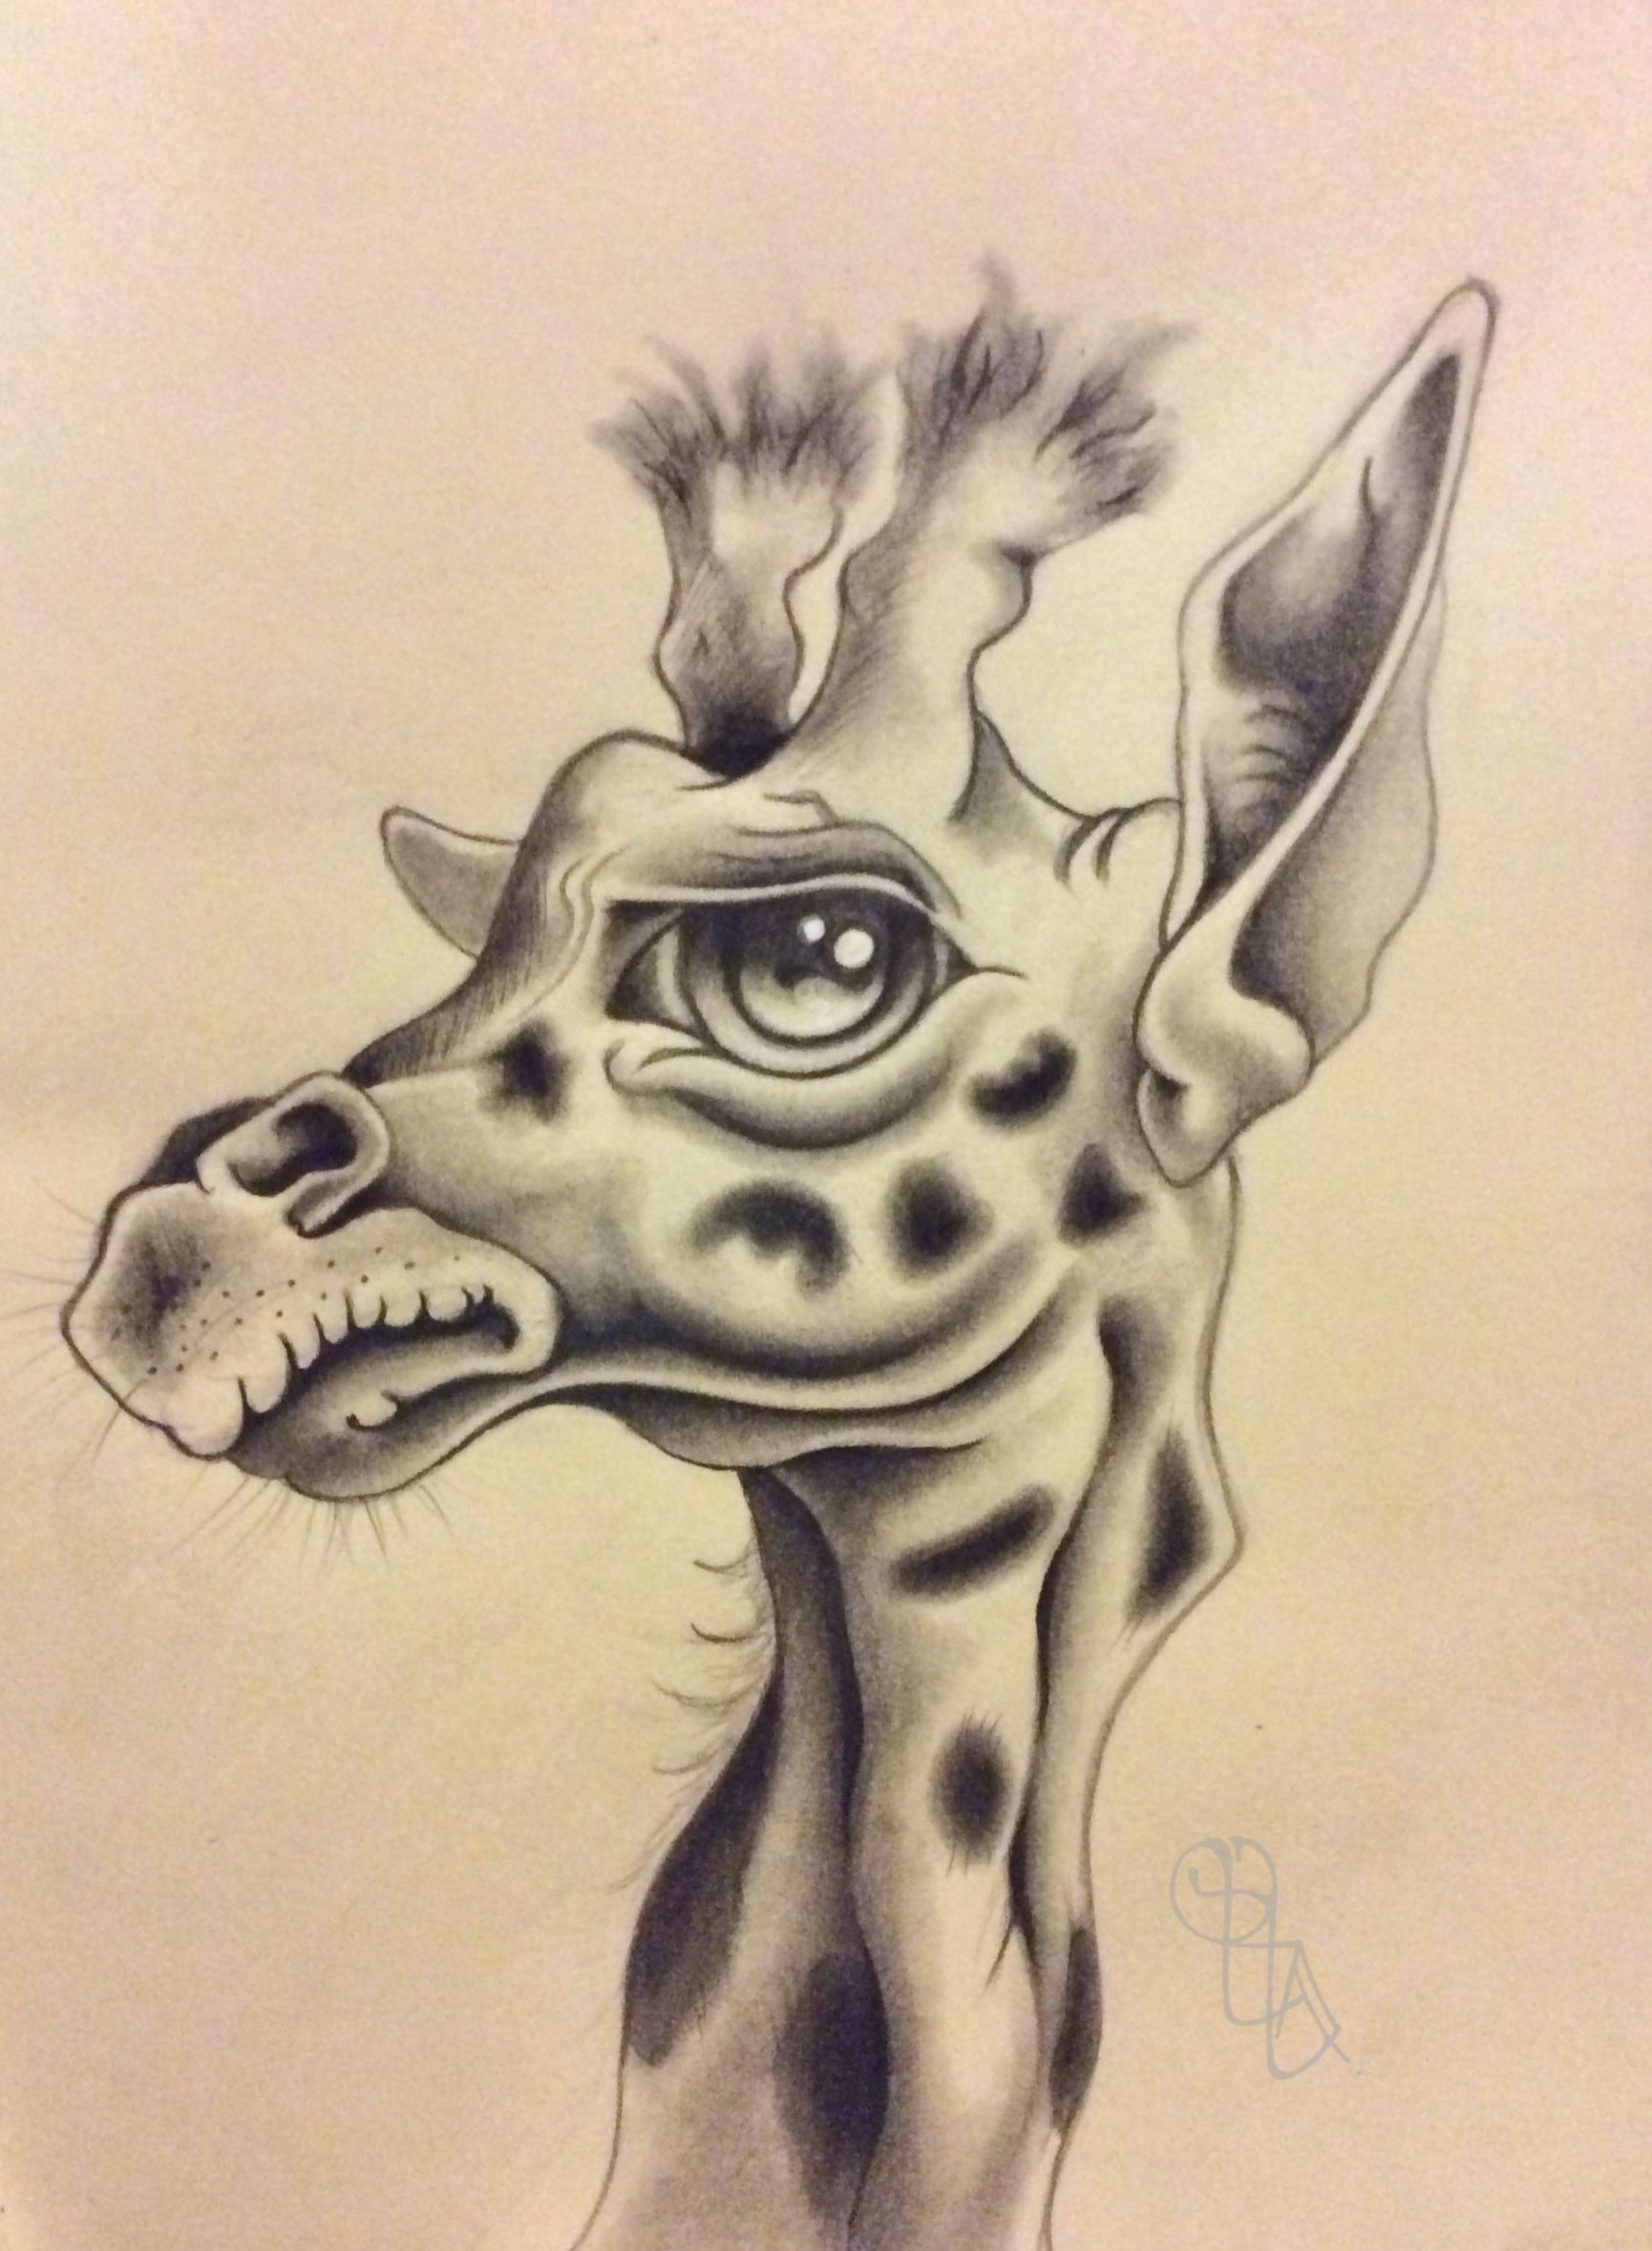 1730x2357 Character Giraffe Pencil Drawing On Tanned Paper Pencil Studies